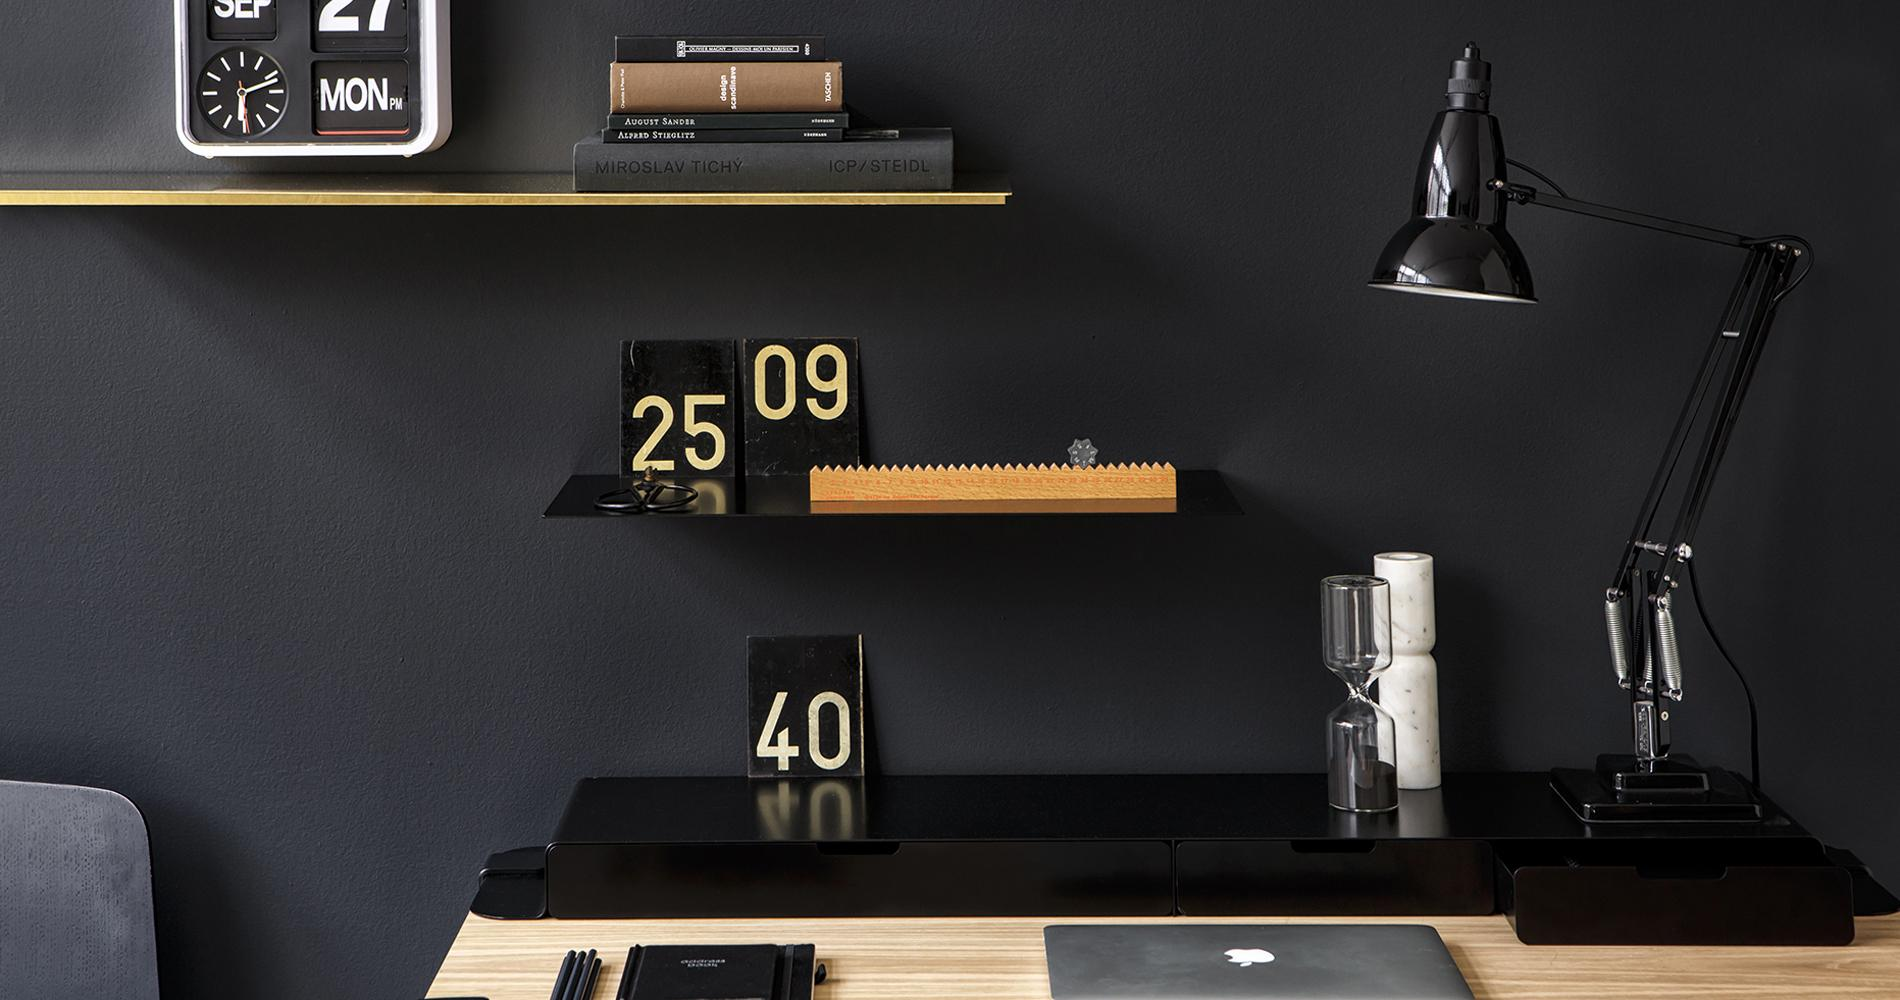 ces accessoires qui nous simplifient la vie de bureau madame figaro. Black Bedroom Furniture Sets. Home Design Ideas